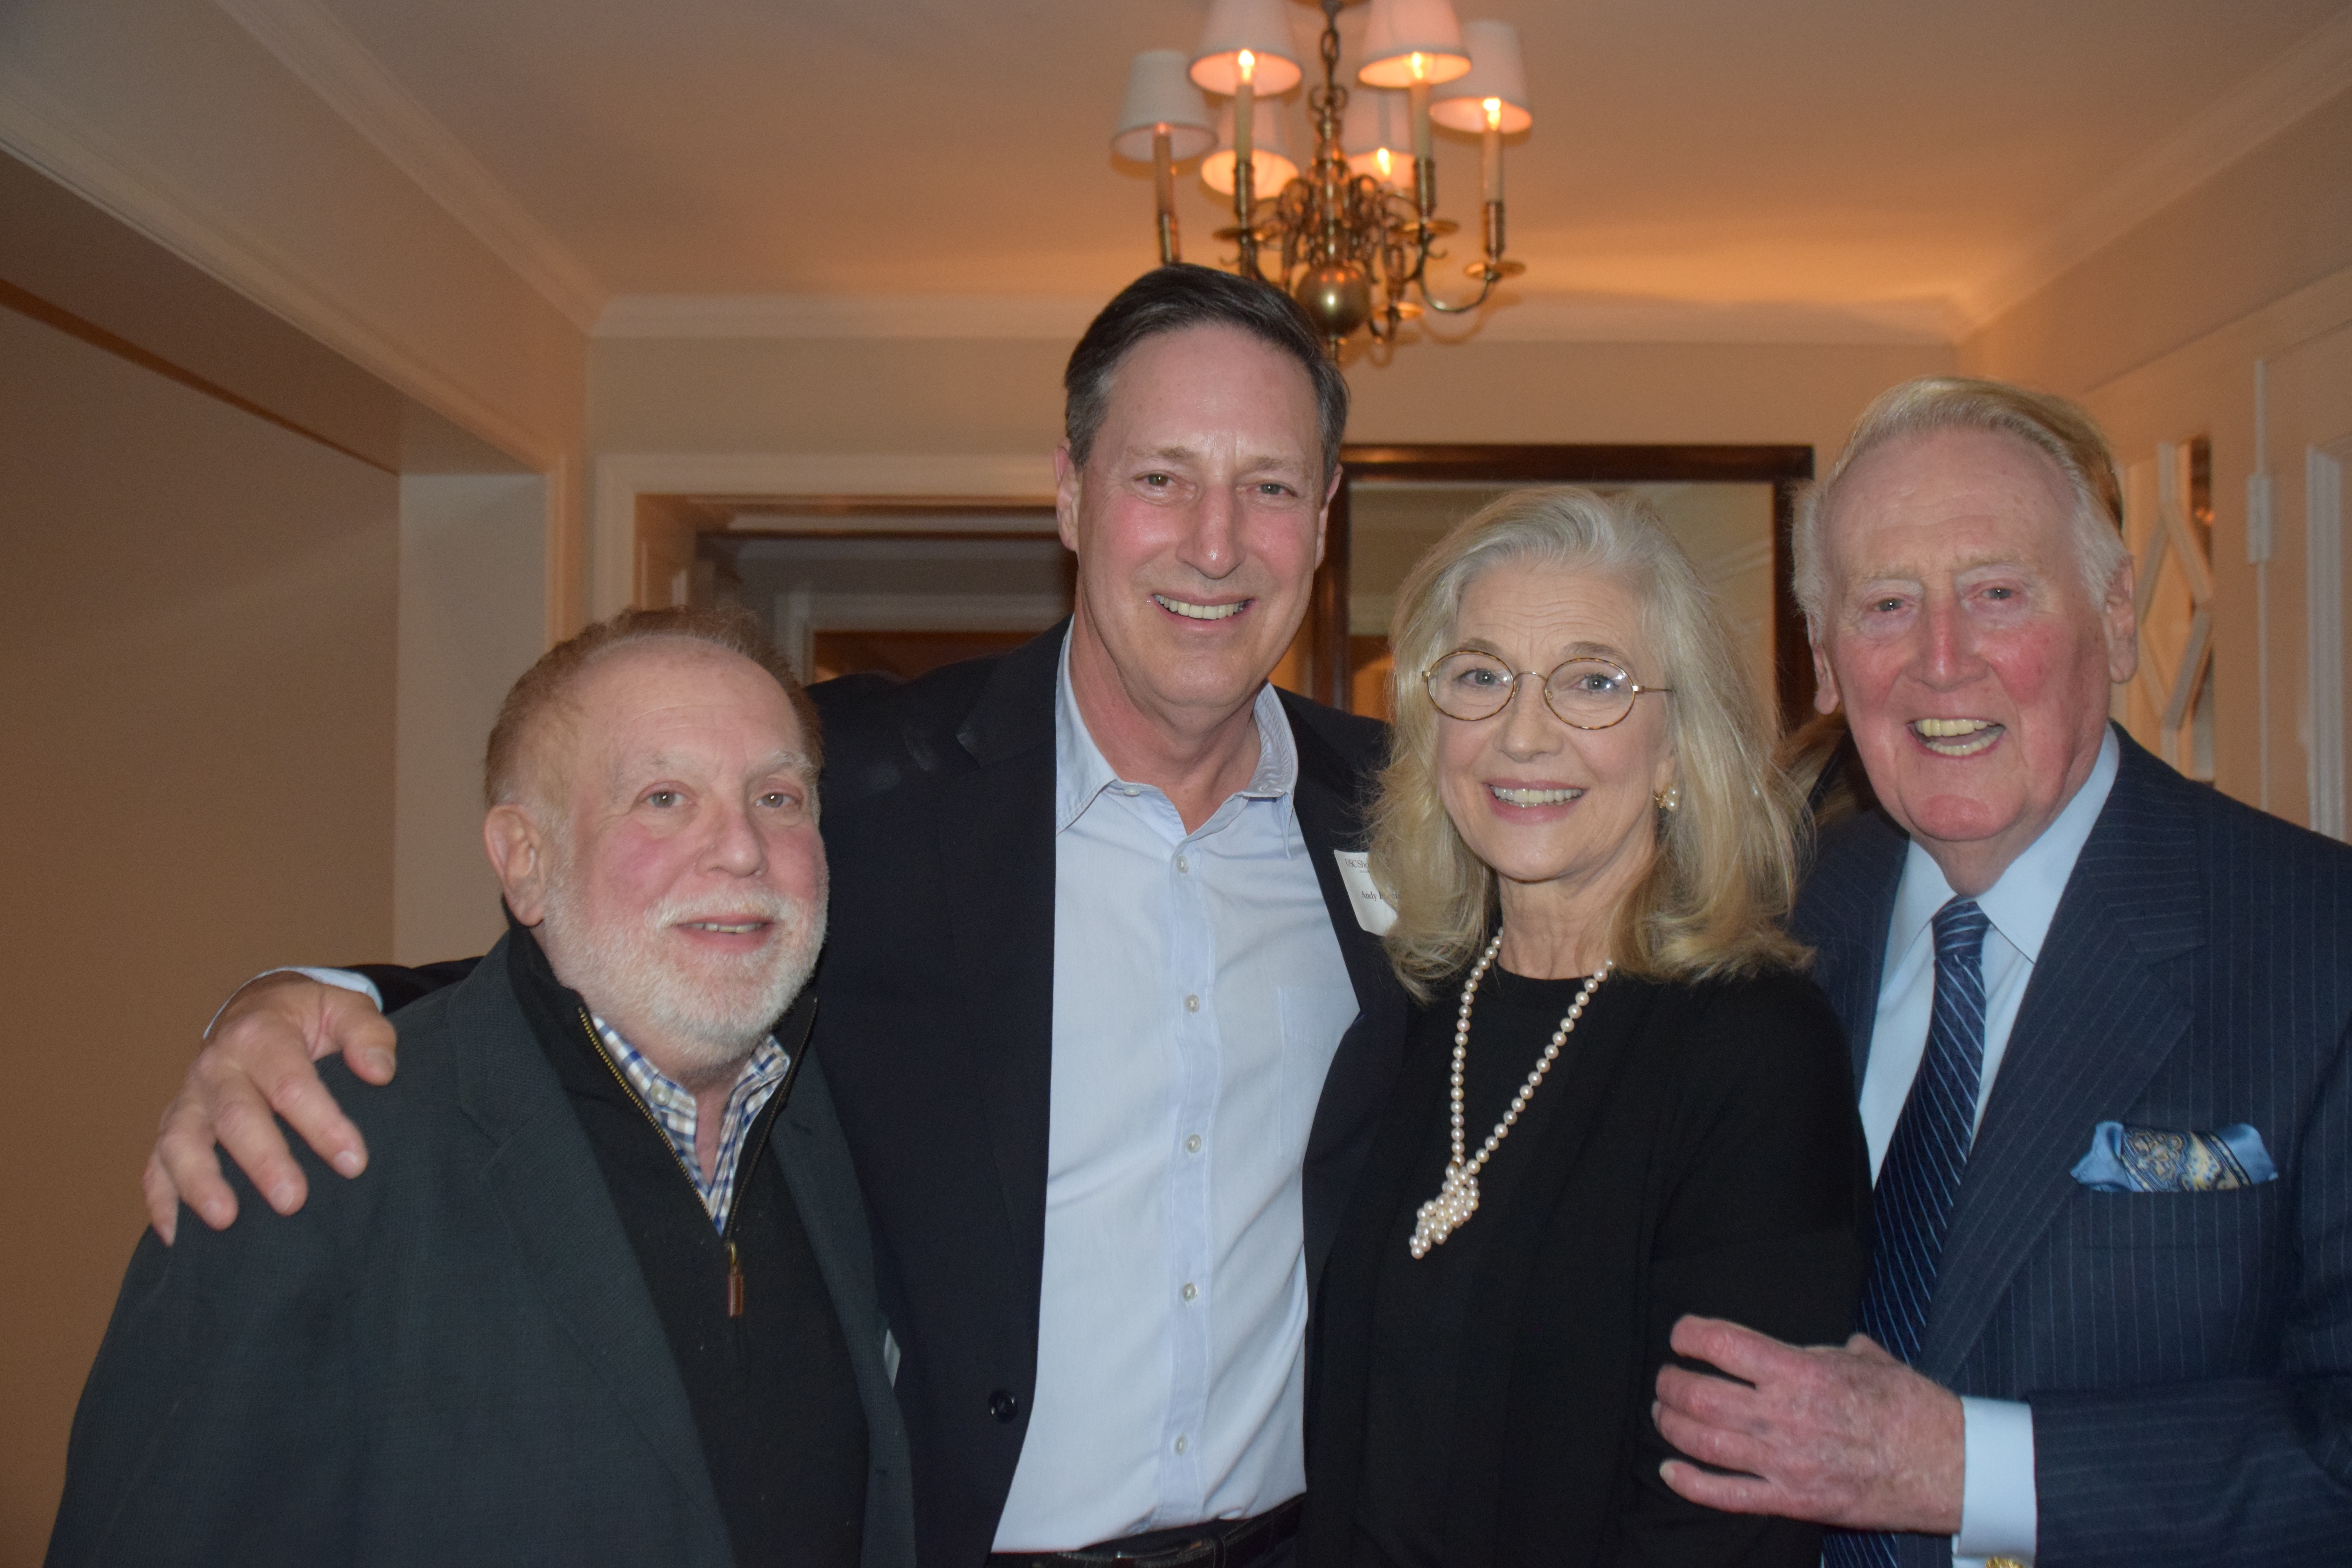 Ken Ehrlich, Andy Friendly, and Sandra & Vin Scully